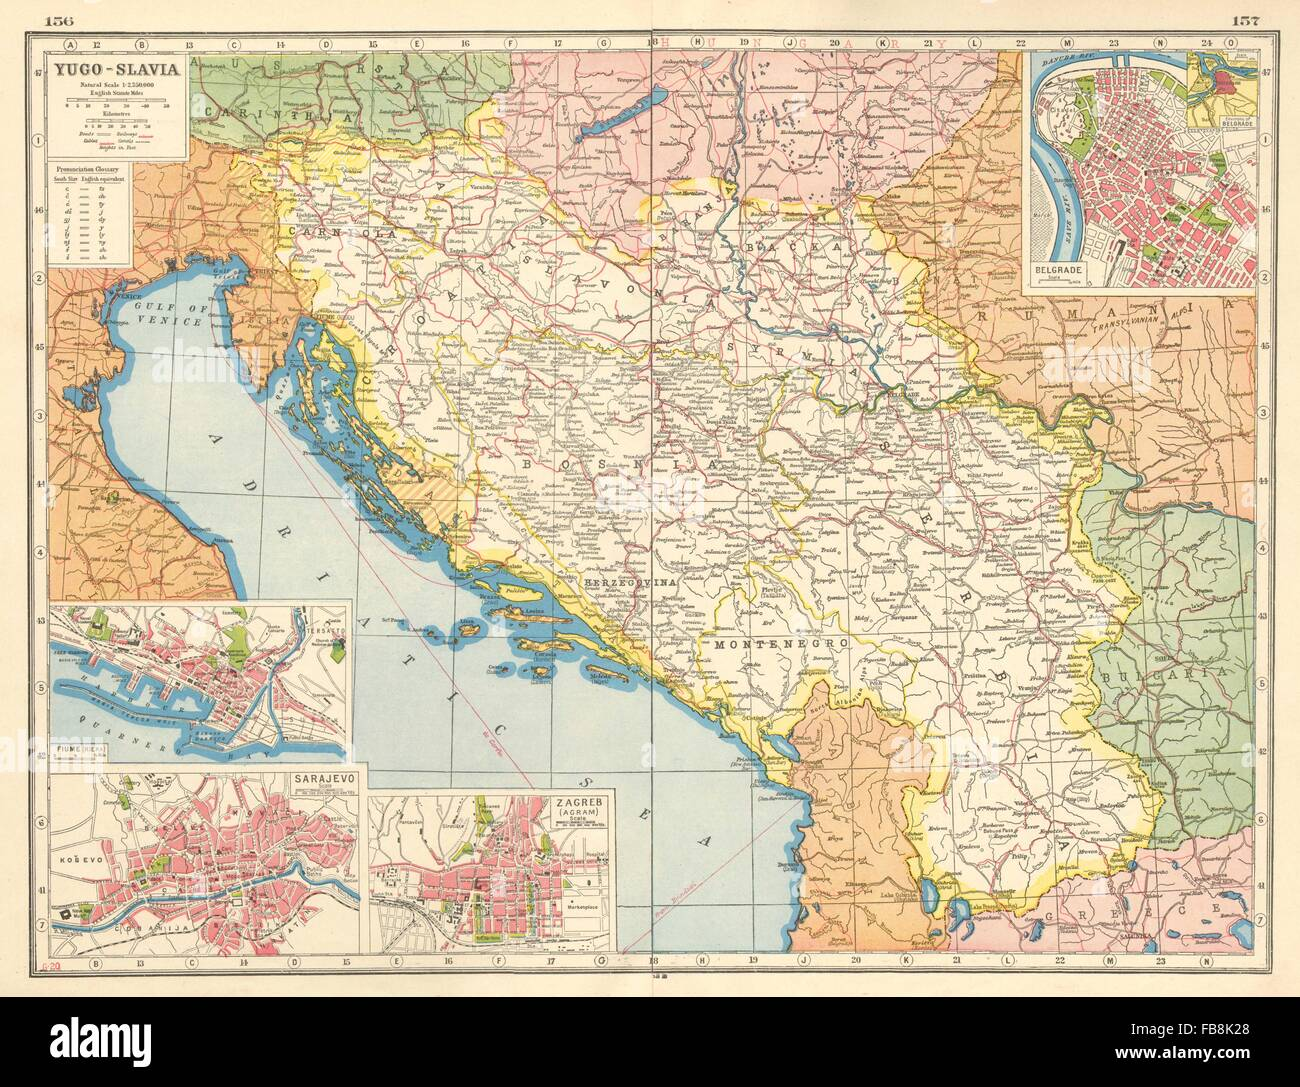 Cartina Jugoslavia.Yugoslavia Map High Resolution Stock Photography And Images Alamy